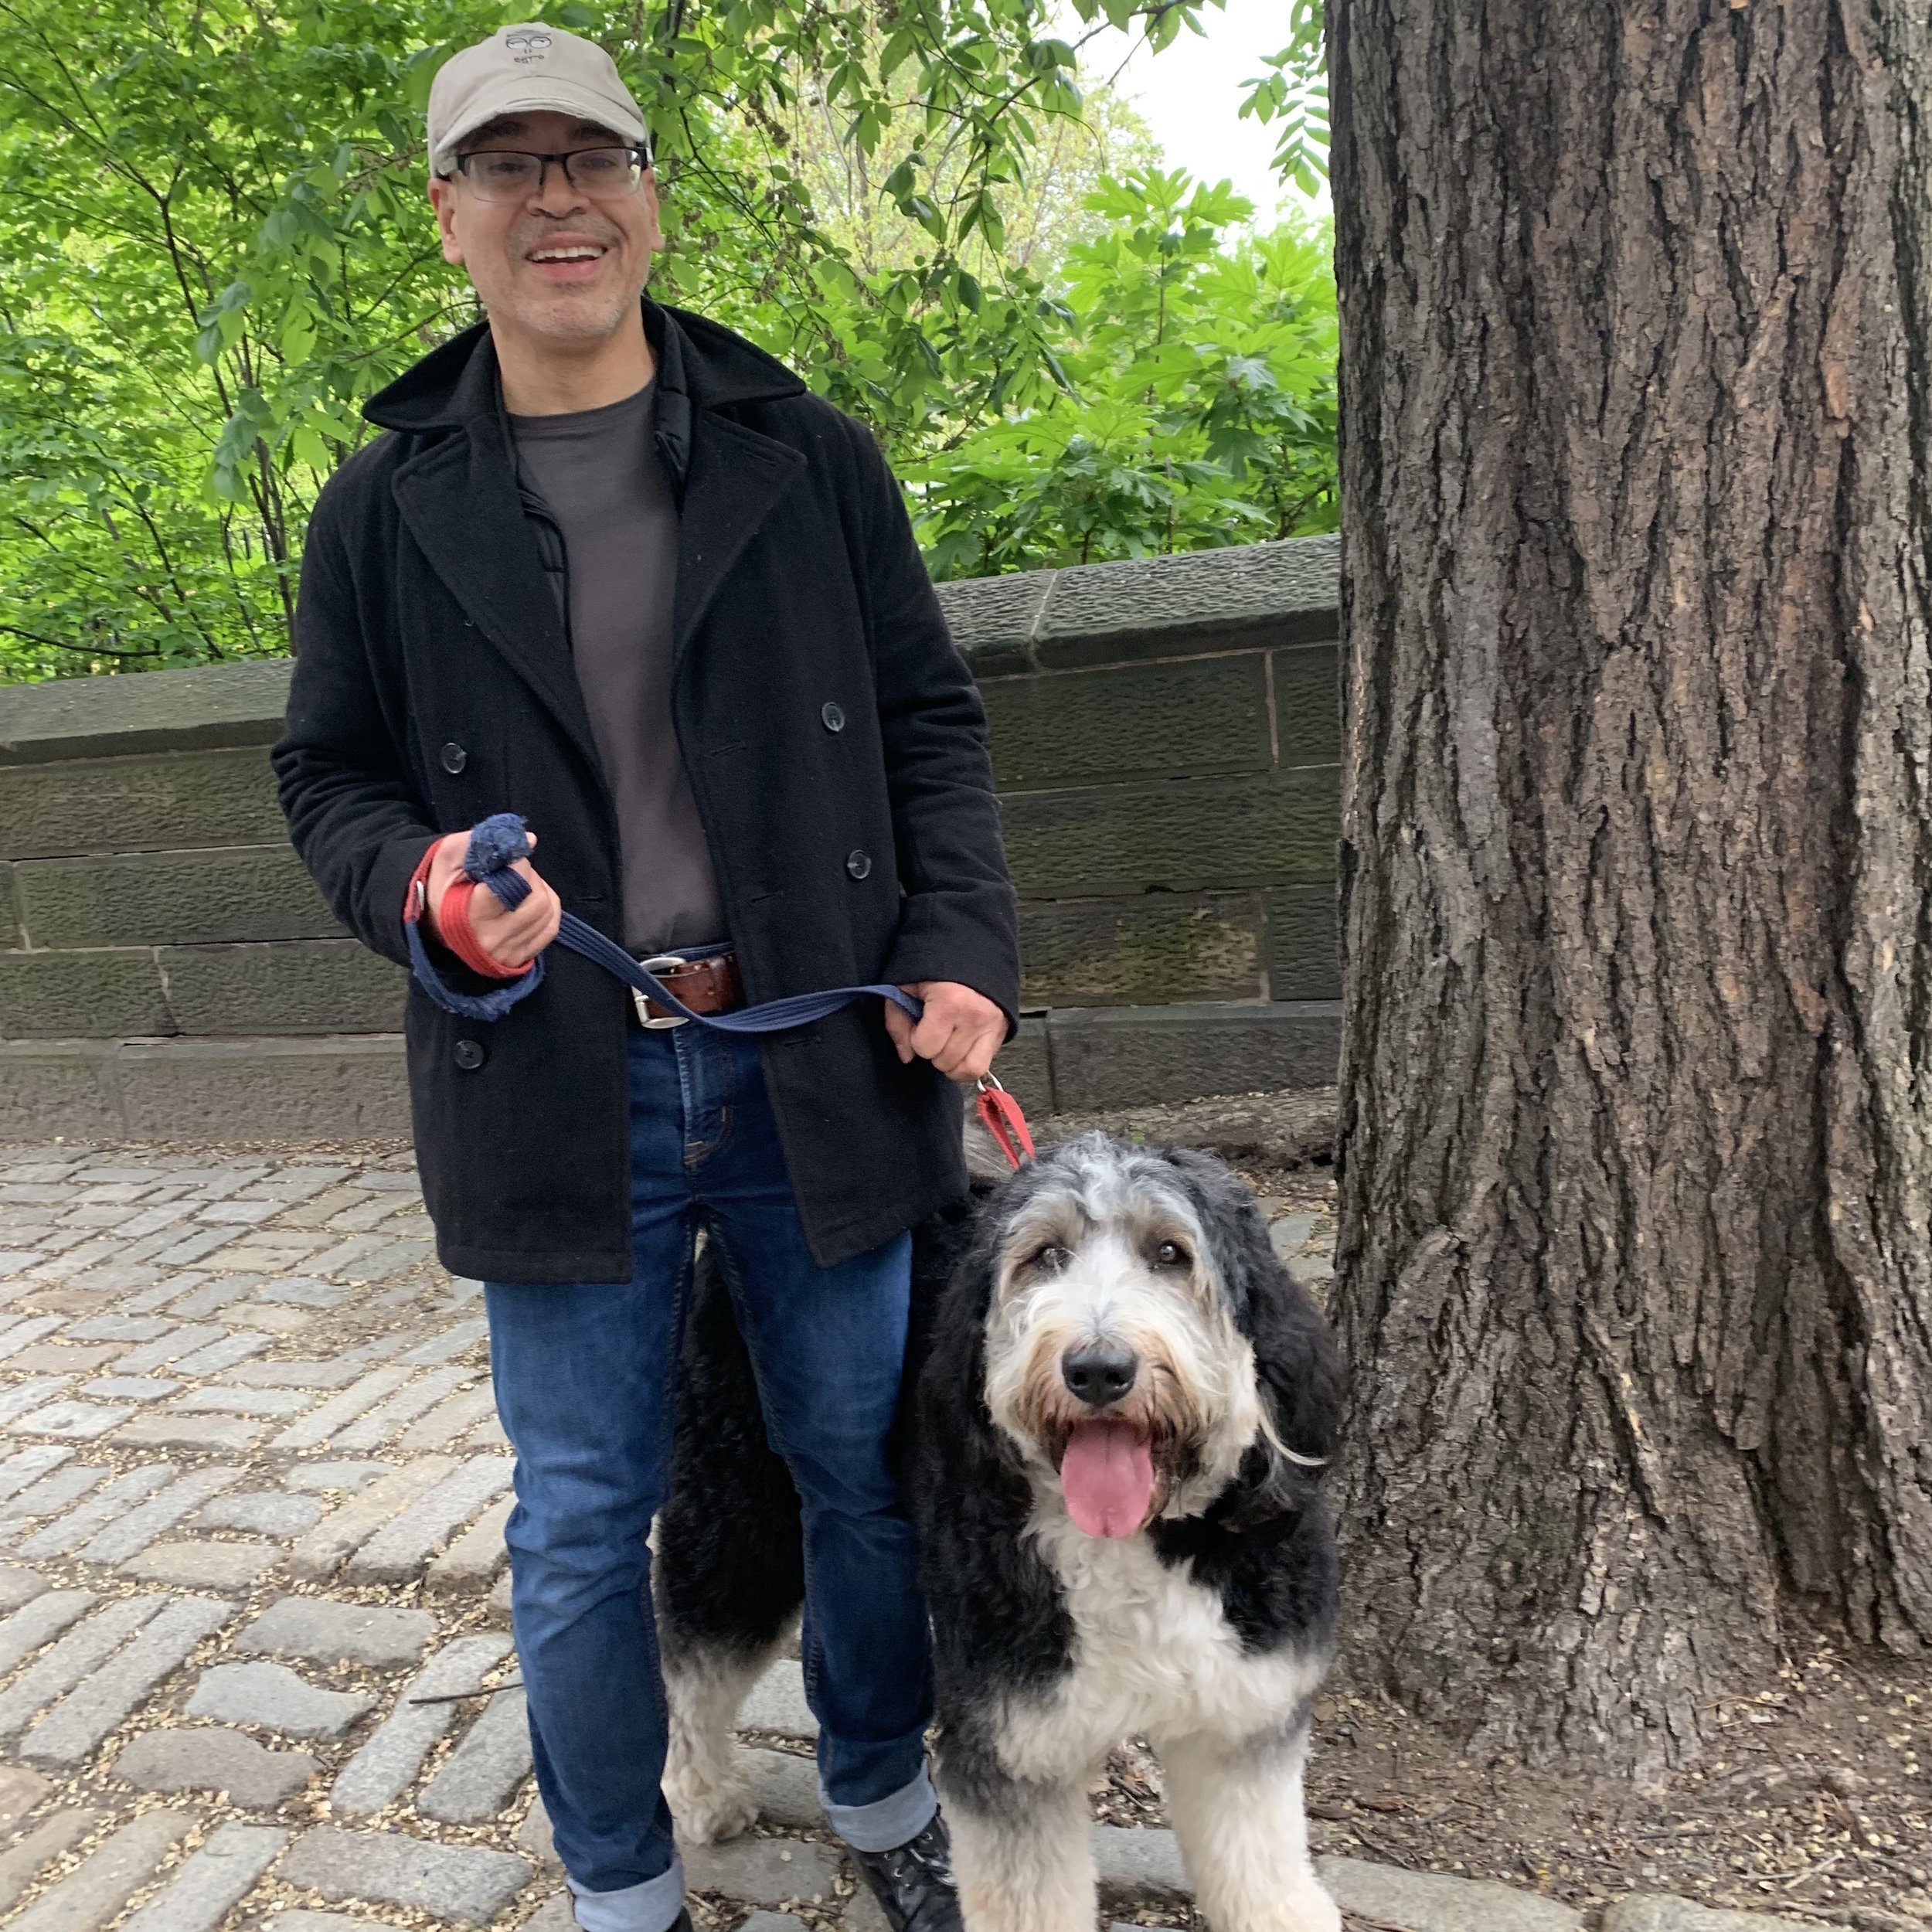 CHARLIE ARROYO, DOG WALKER  A TRUE NEW YORKER, CHARLIE HAS EXTENSIVE EXPERIENCE IN GRAPHIC DESIGN AND ILLUSTRATION. HOWEVER, HE HAS FOUND HIS TRUE CALLING AS A DOG LOVER AND HAS BEEN WORKING WITH DOGS FOR OVER TWO YEARS.